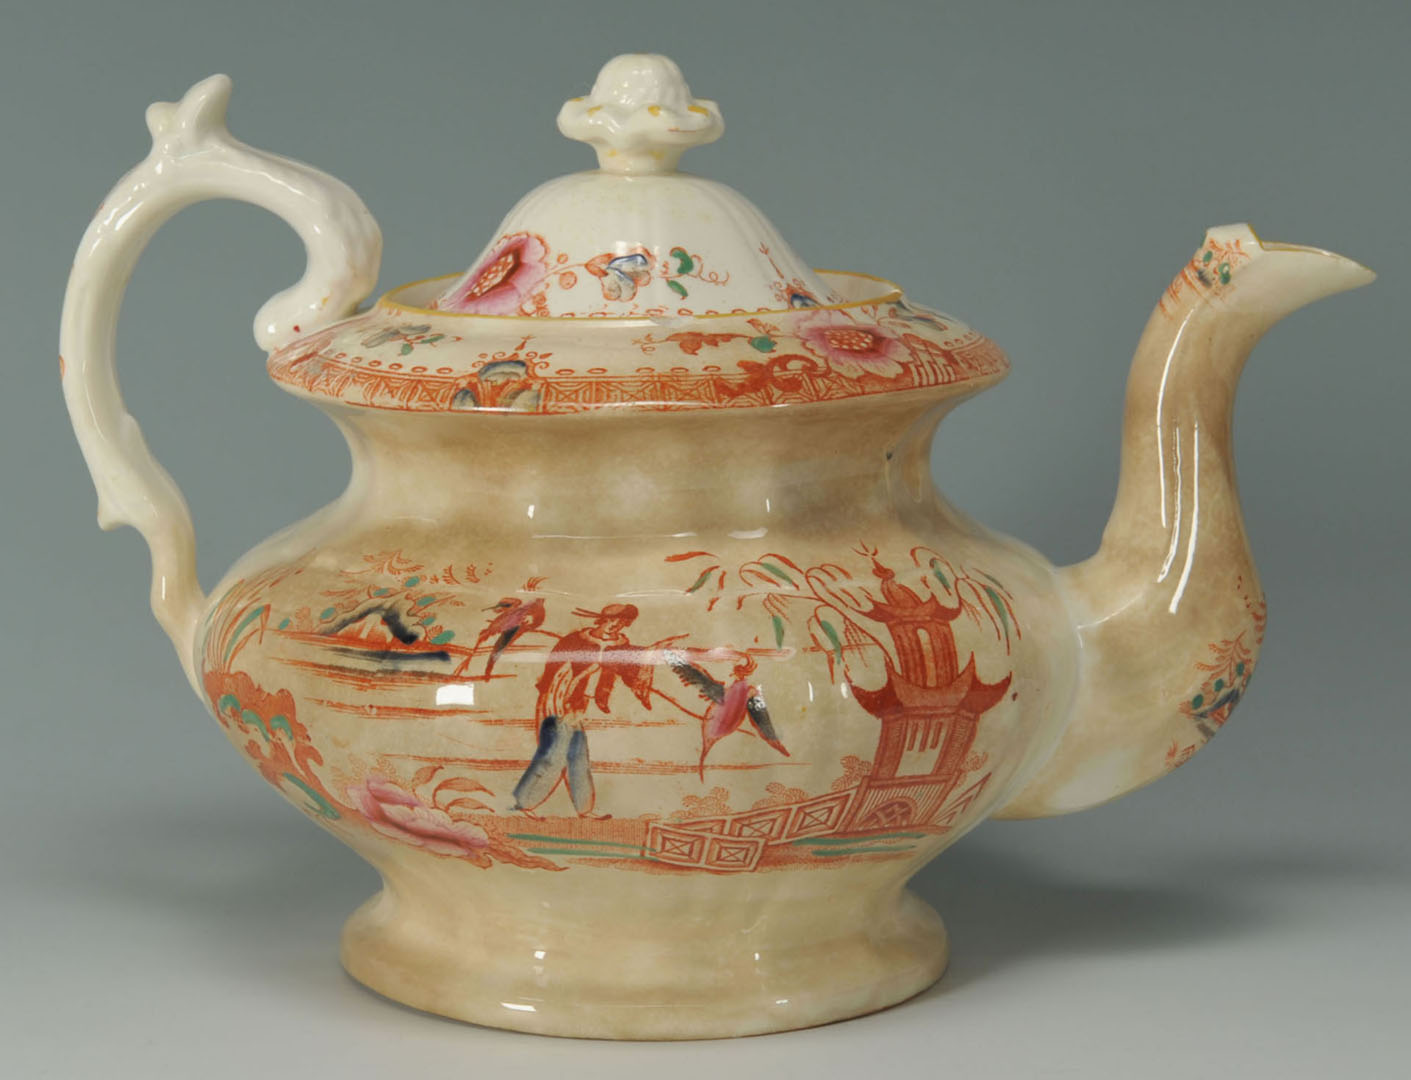 Lot 2872339: 2 English Ceramic Items w/ Asian Themes